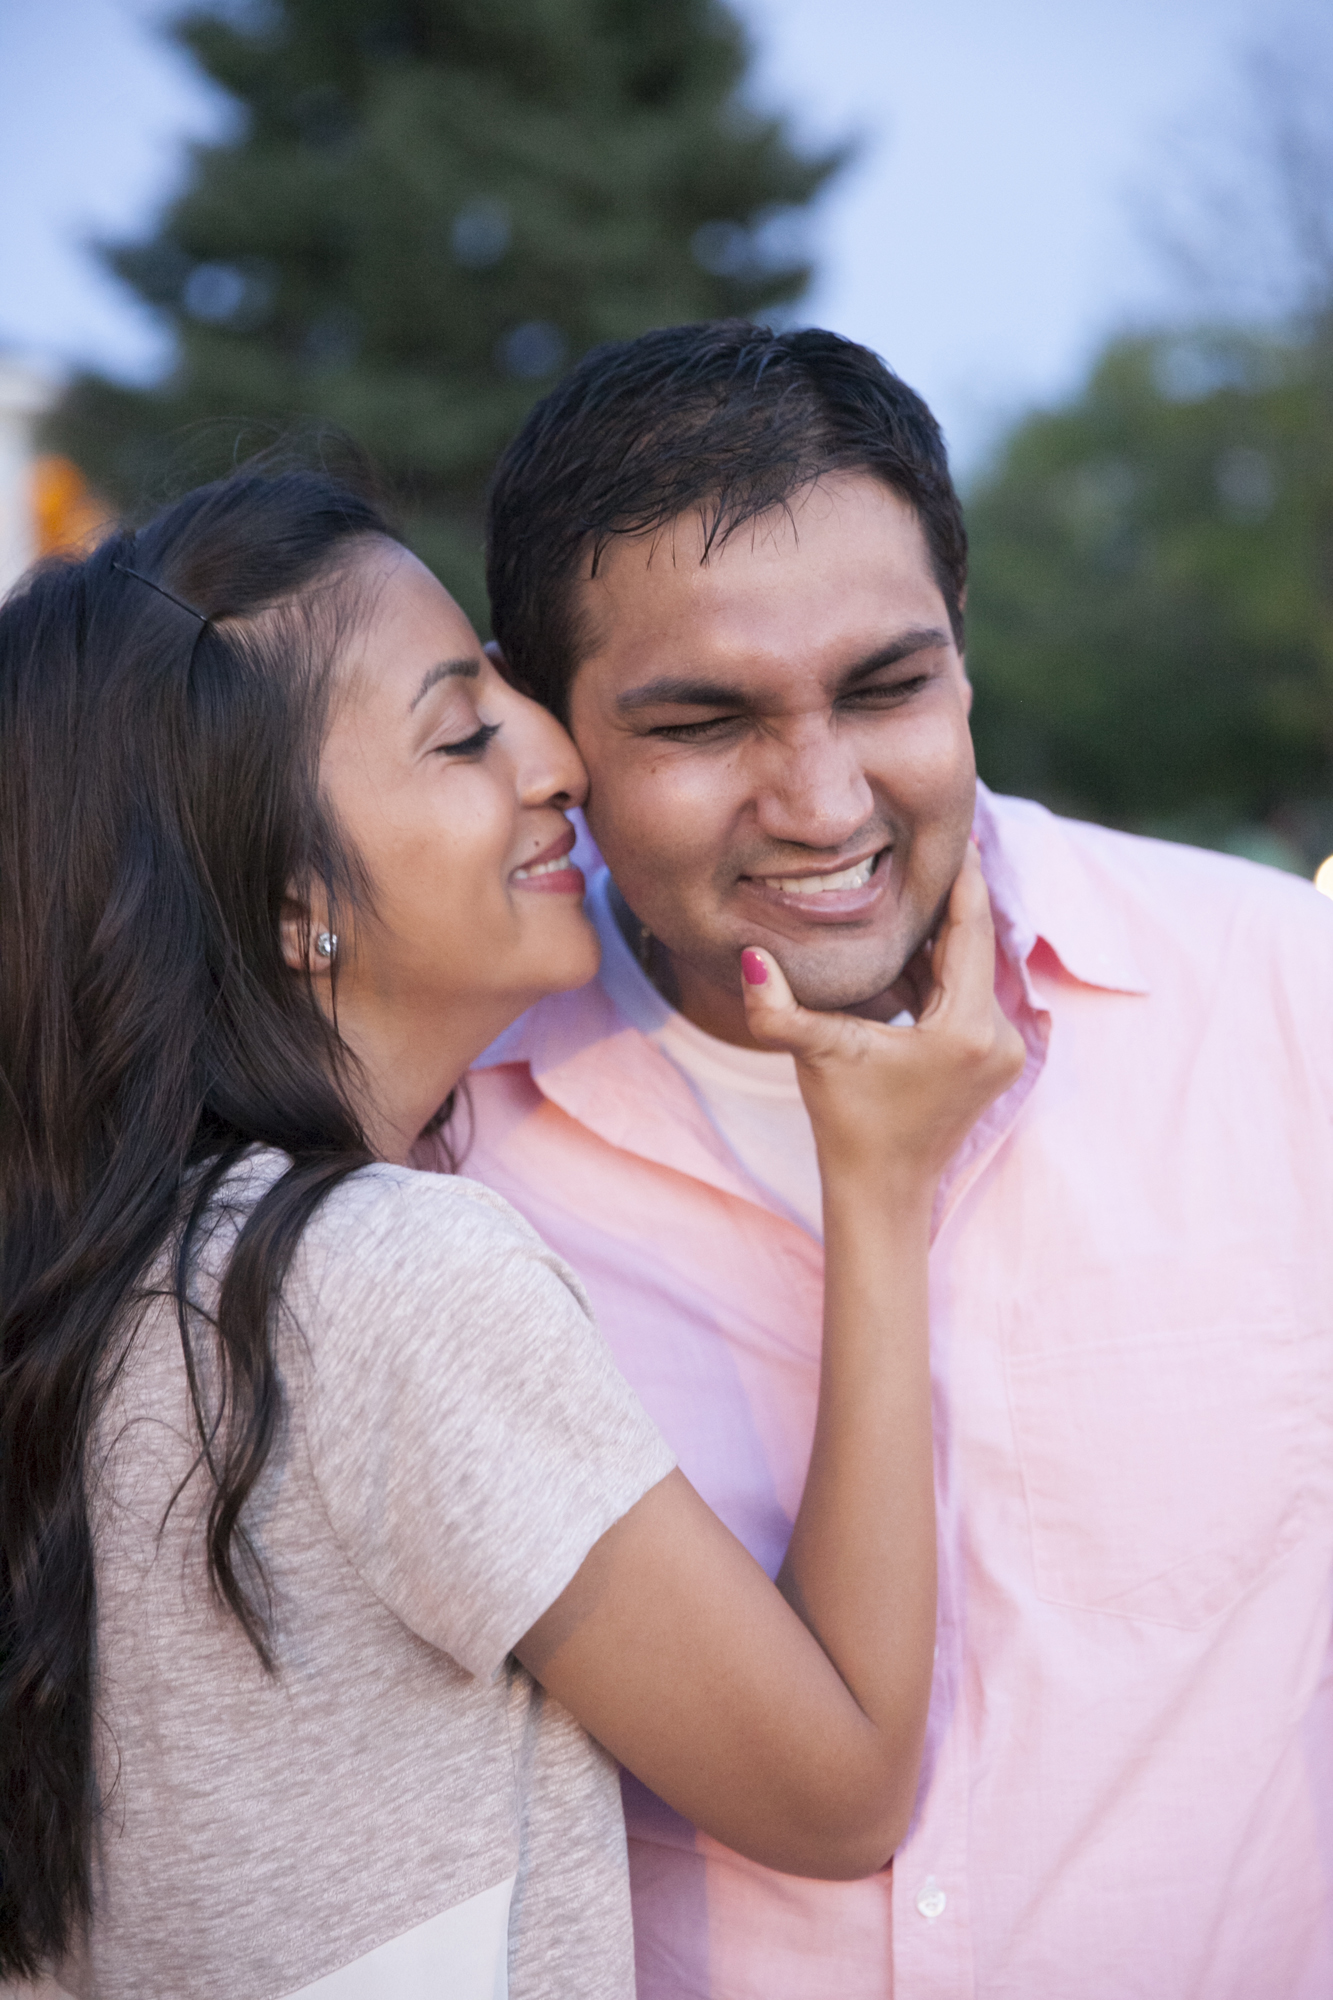 centennial_lake_edina_engagement_22.jpg